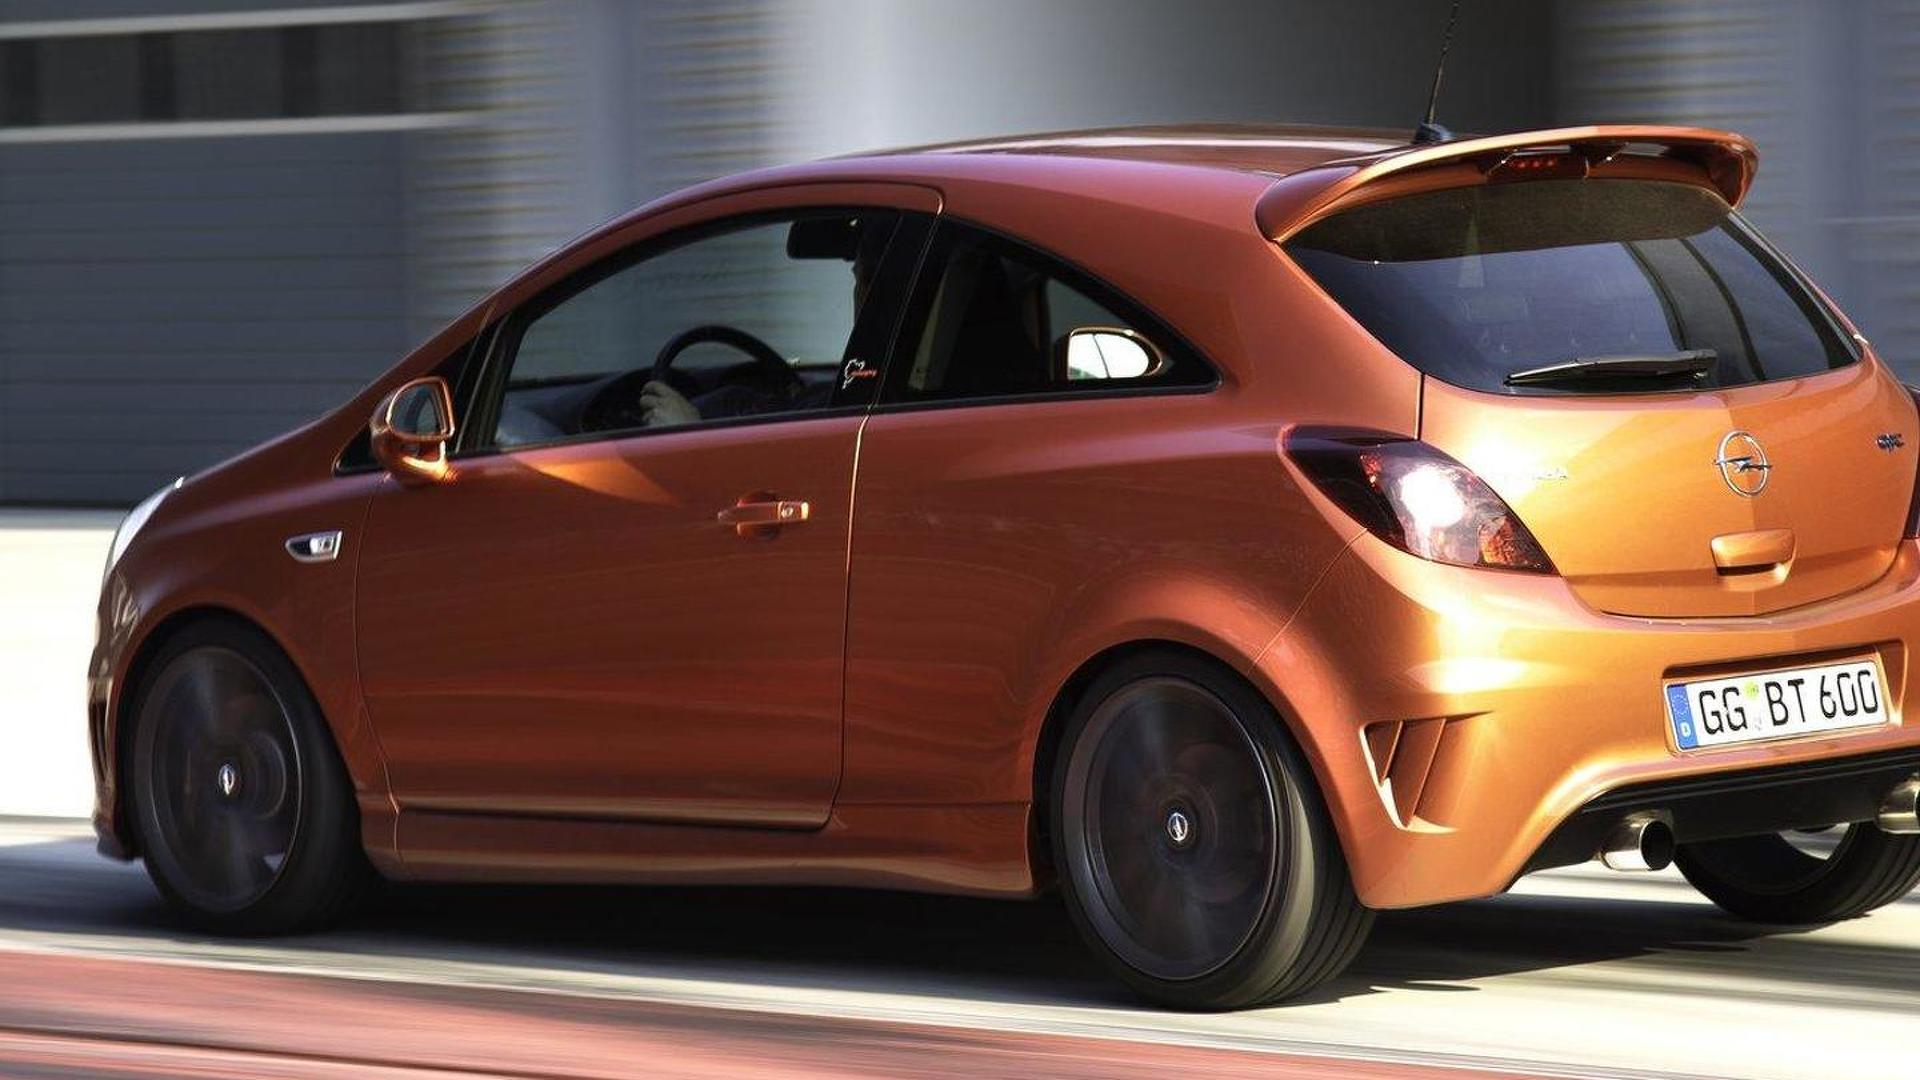 2012 Opel Corsa OPC Nürburgring Edition on the track video